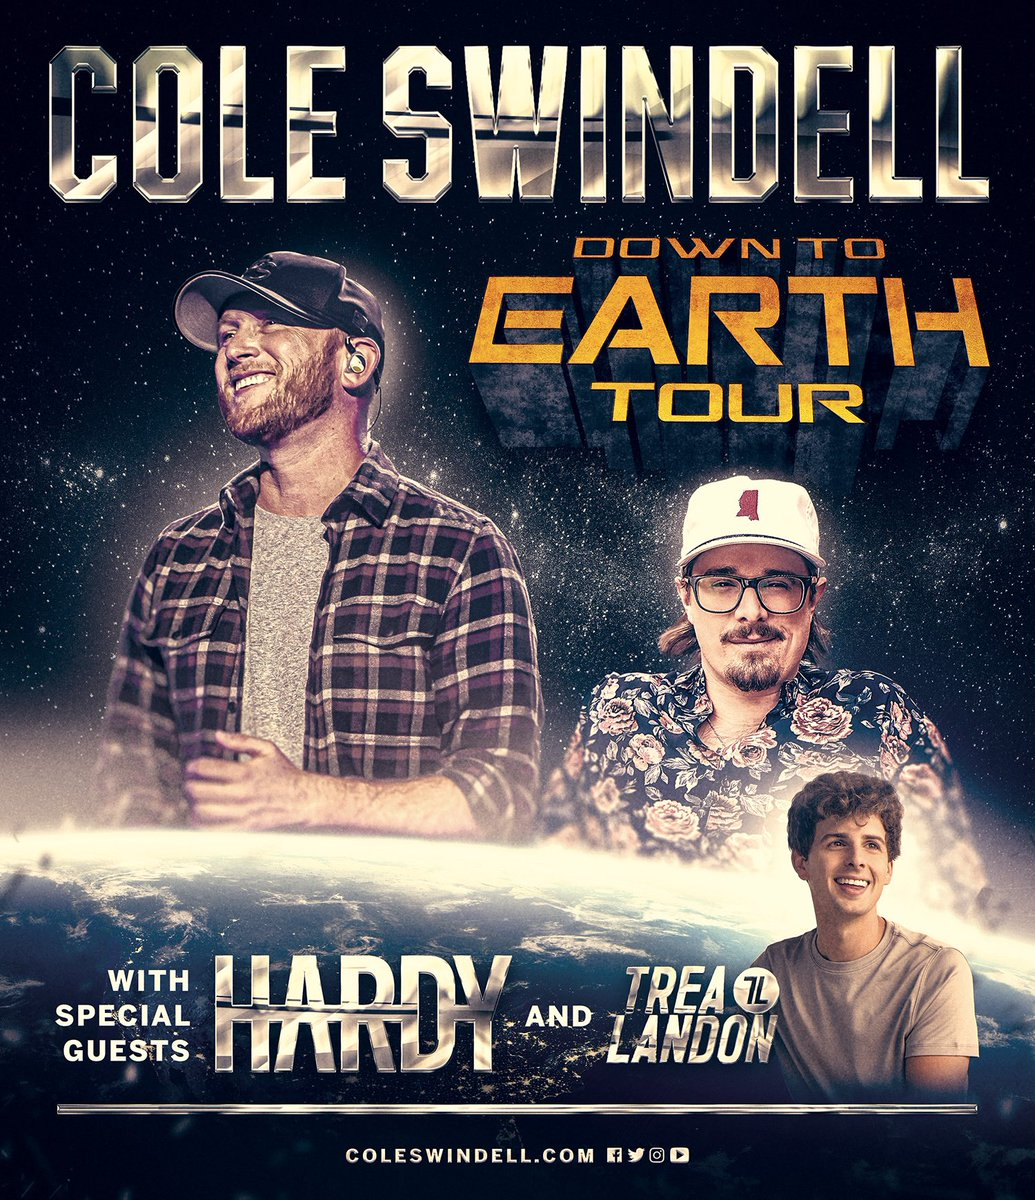 Down To Earth Tour presale starts now and goes through Thursday at 10PM. Run and grab them tix while you can